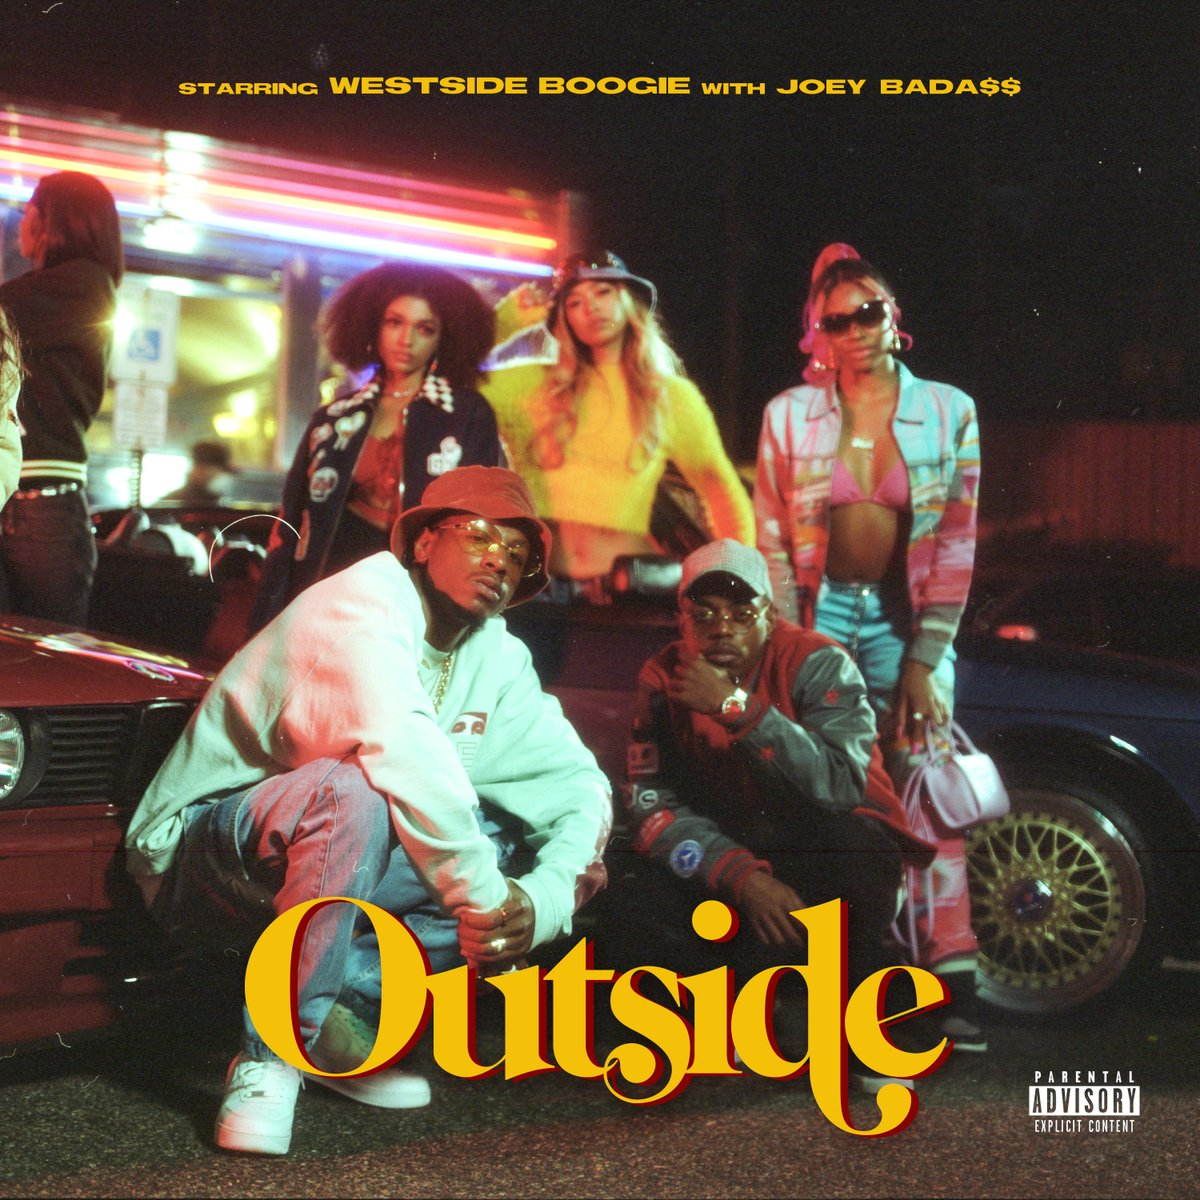 🚨 New @WS_Boogie! #Outside featuring @joeyBADASS  just dropped 🚨 streaming everywhere now -